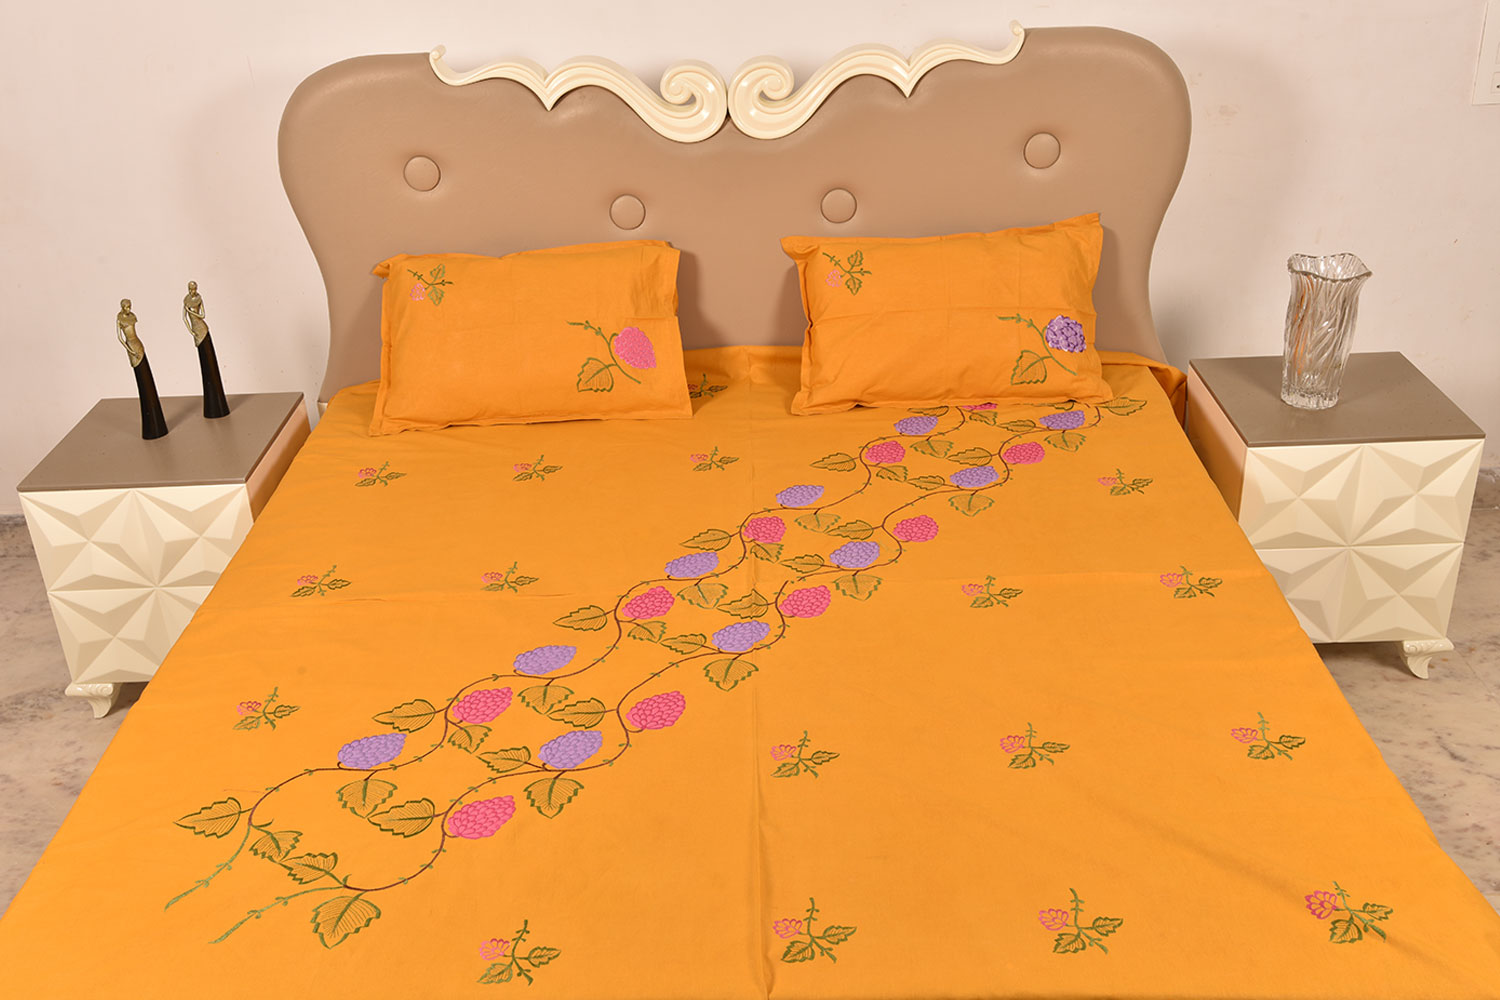 Orange Handmade Bed Sheet Linen with Pink & Purple Floral Design Beautiful Decorative Stylish